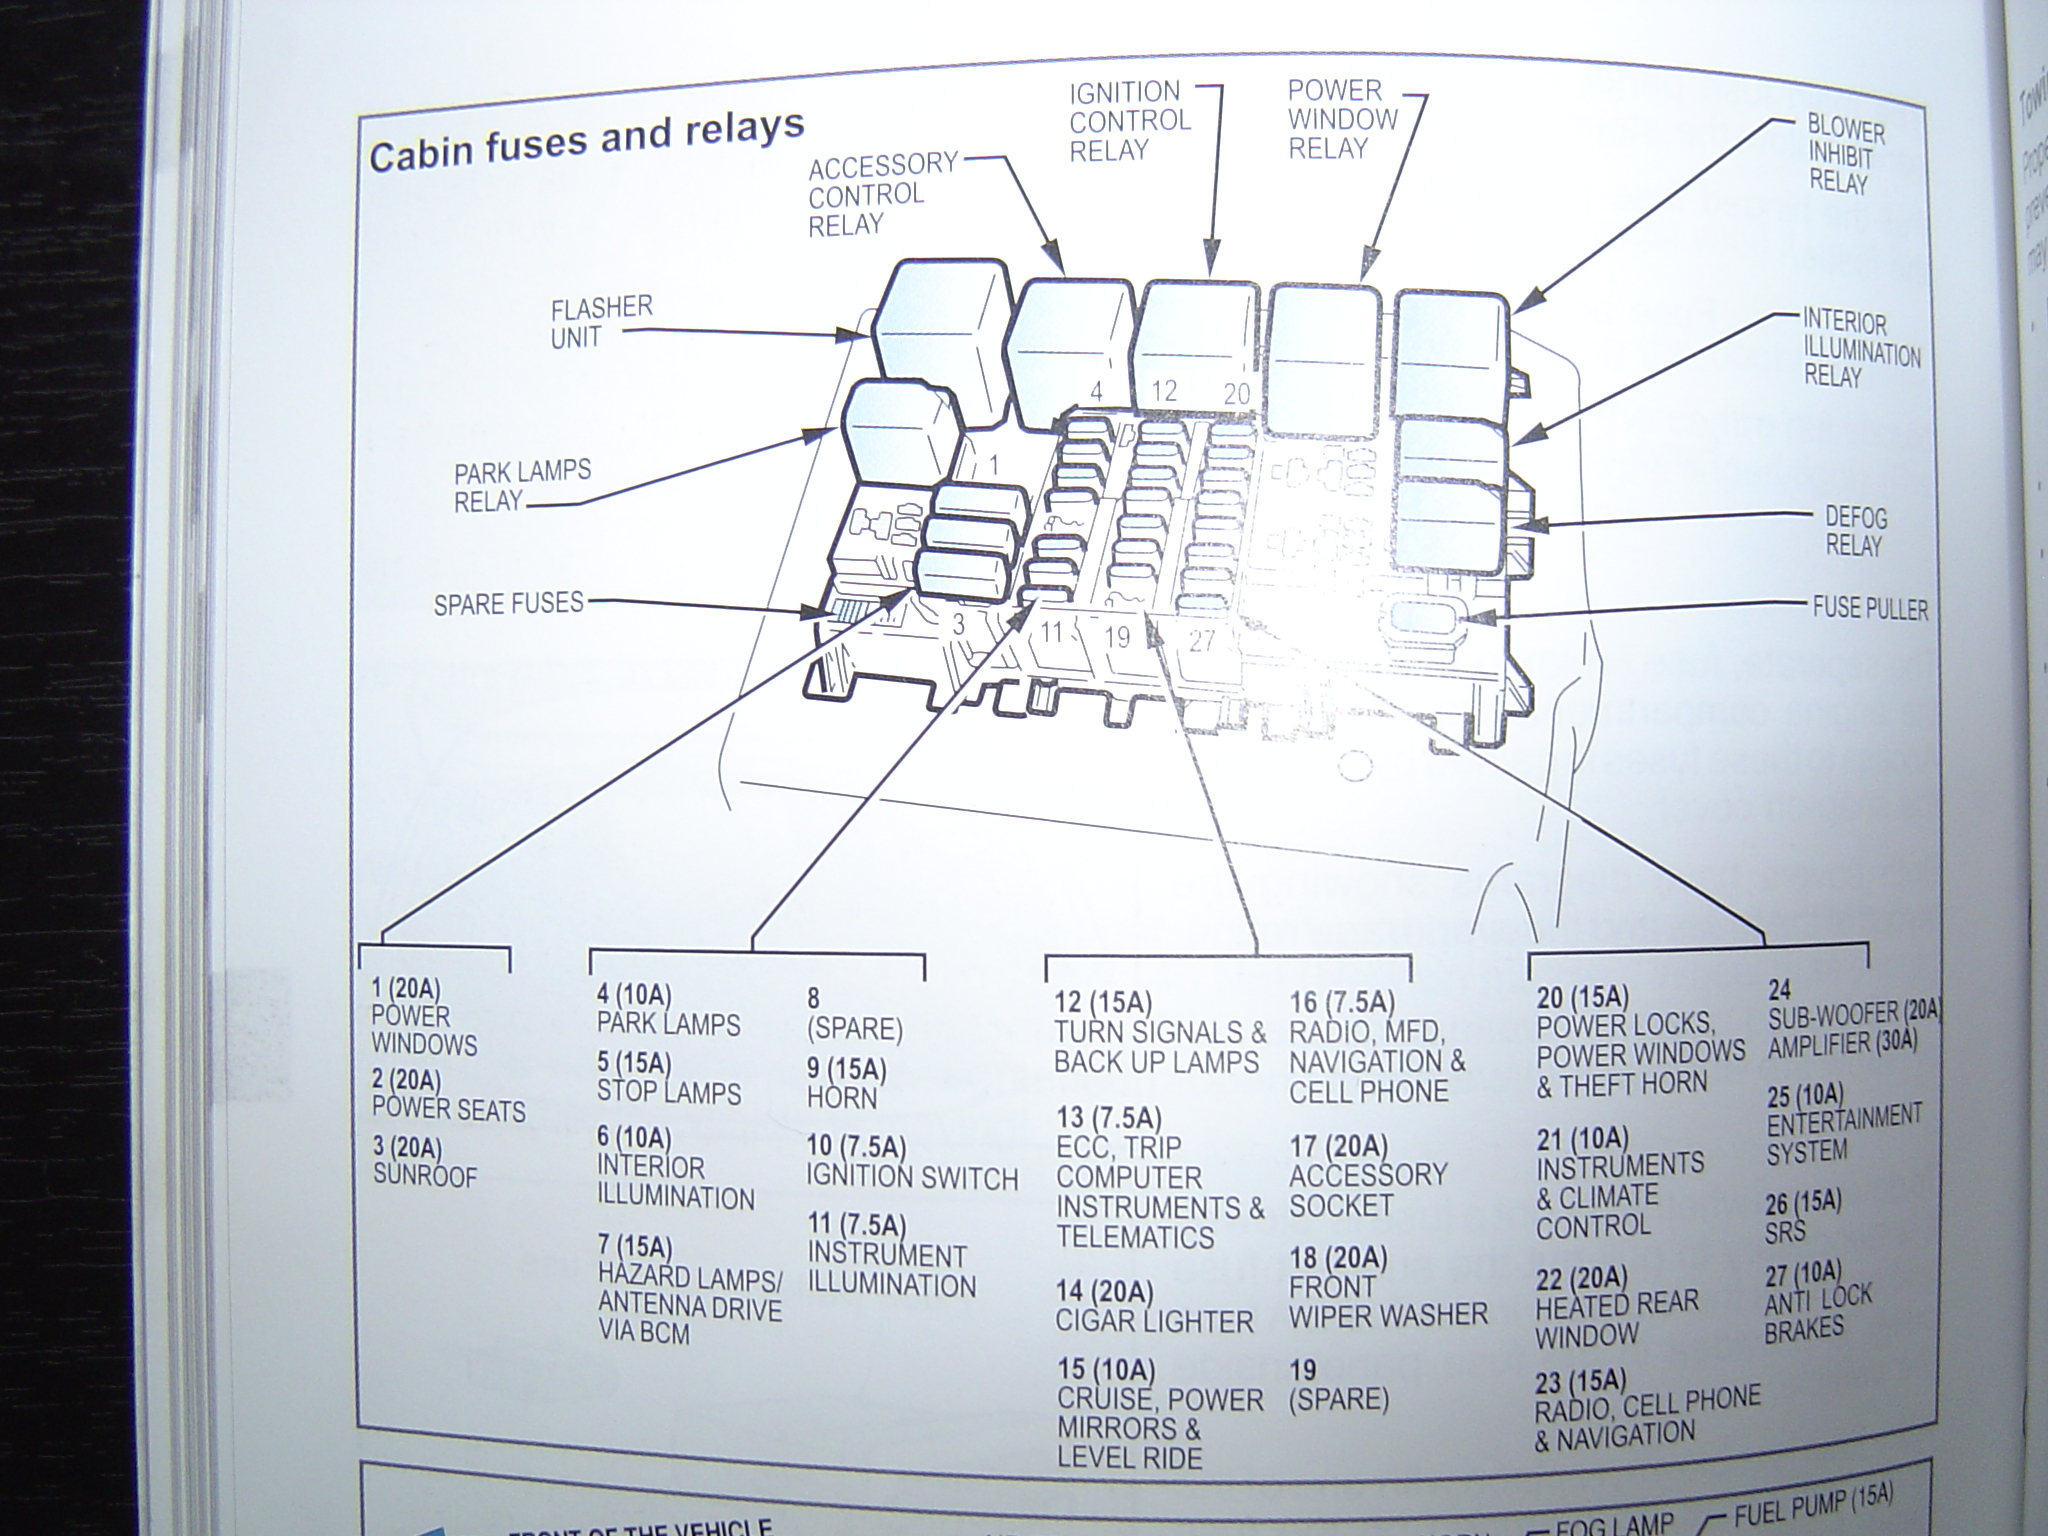 VY_CABIN_FUSEBOX cabin fuse box diagrams ba bf vx vy vz ve a fuse box diagrams for a 1998 ford motorhome at aneh.co